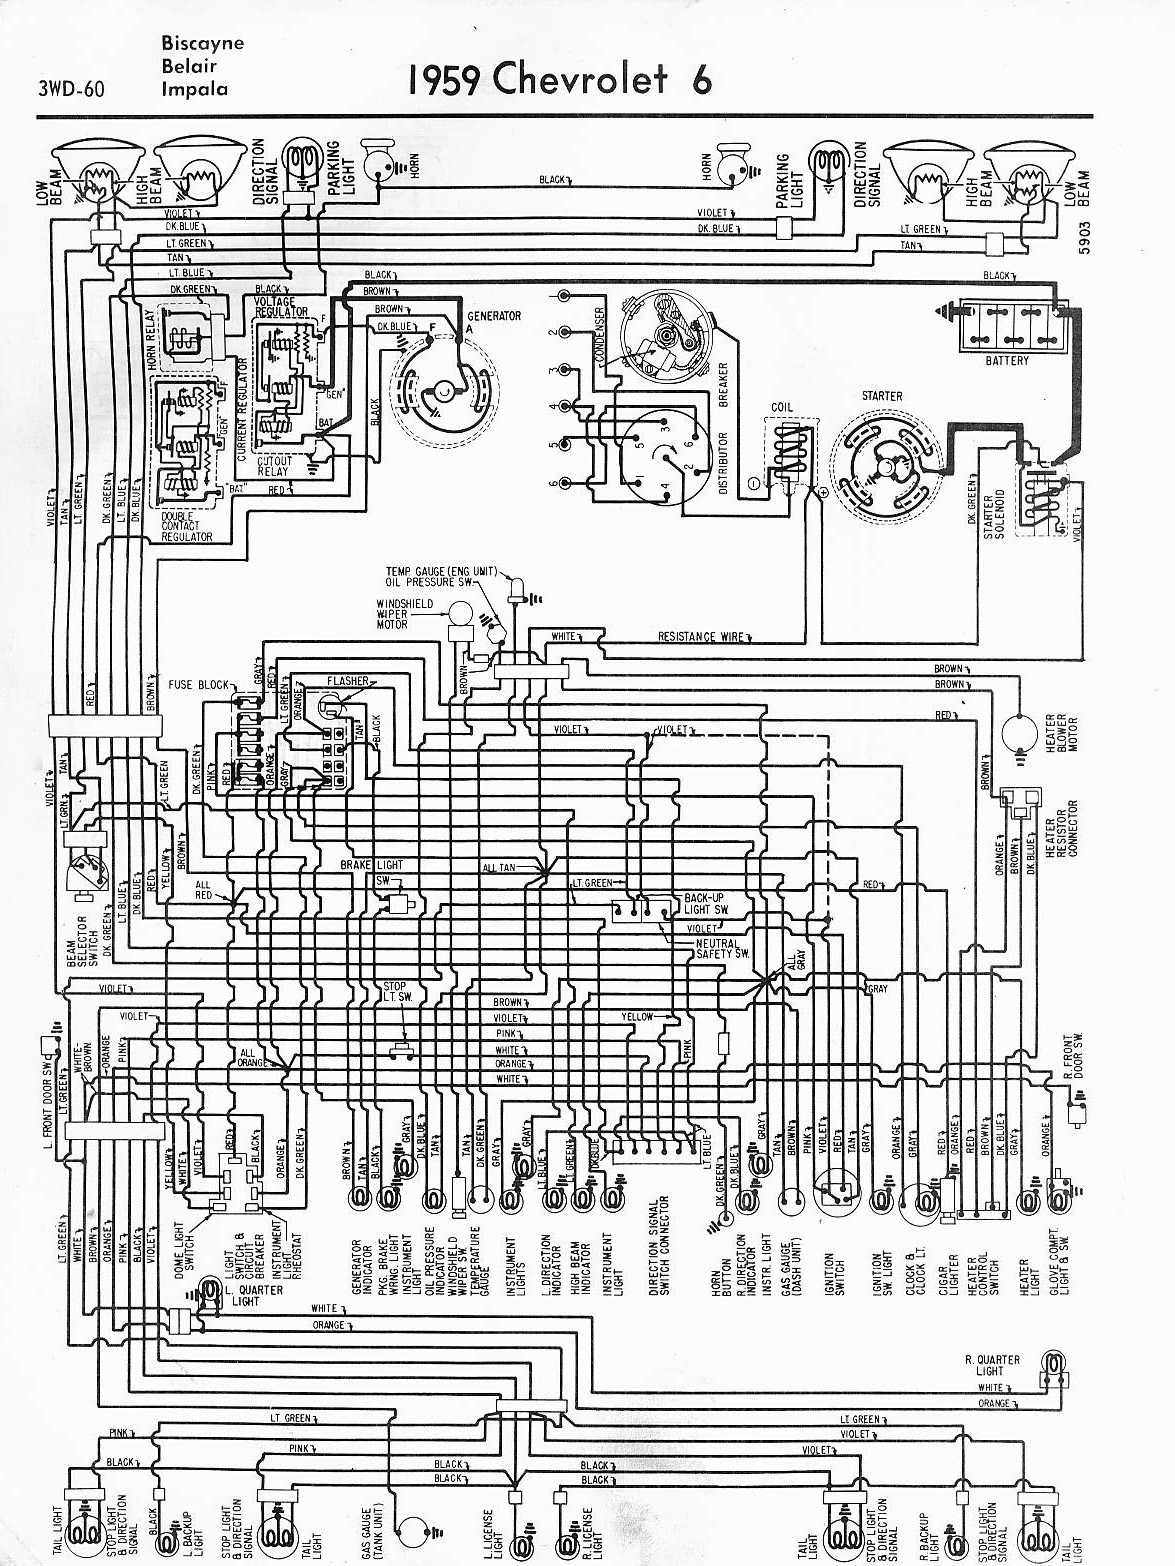 wiring diagrams 59 60, 64 88 el camino central forum 1983 el camino wiring -diagram 69 el camino wiring schematic #10